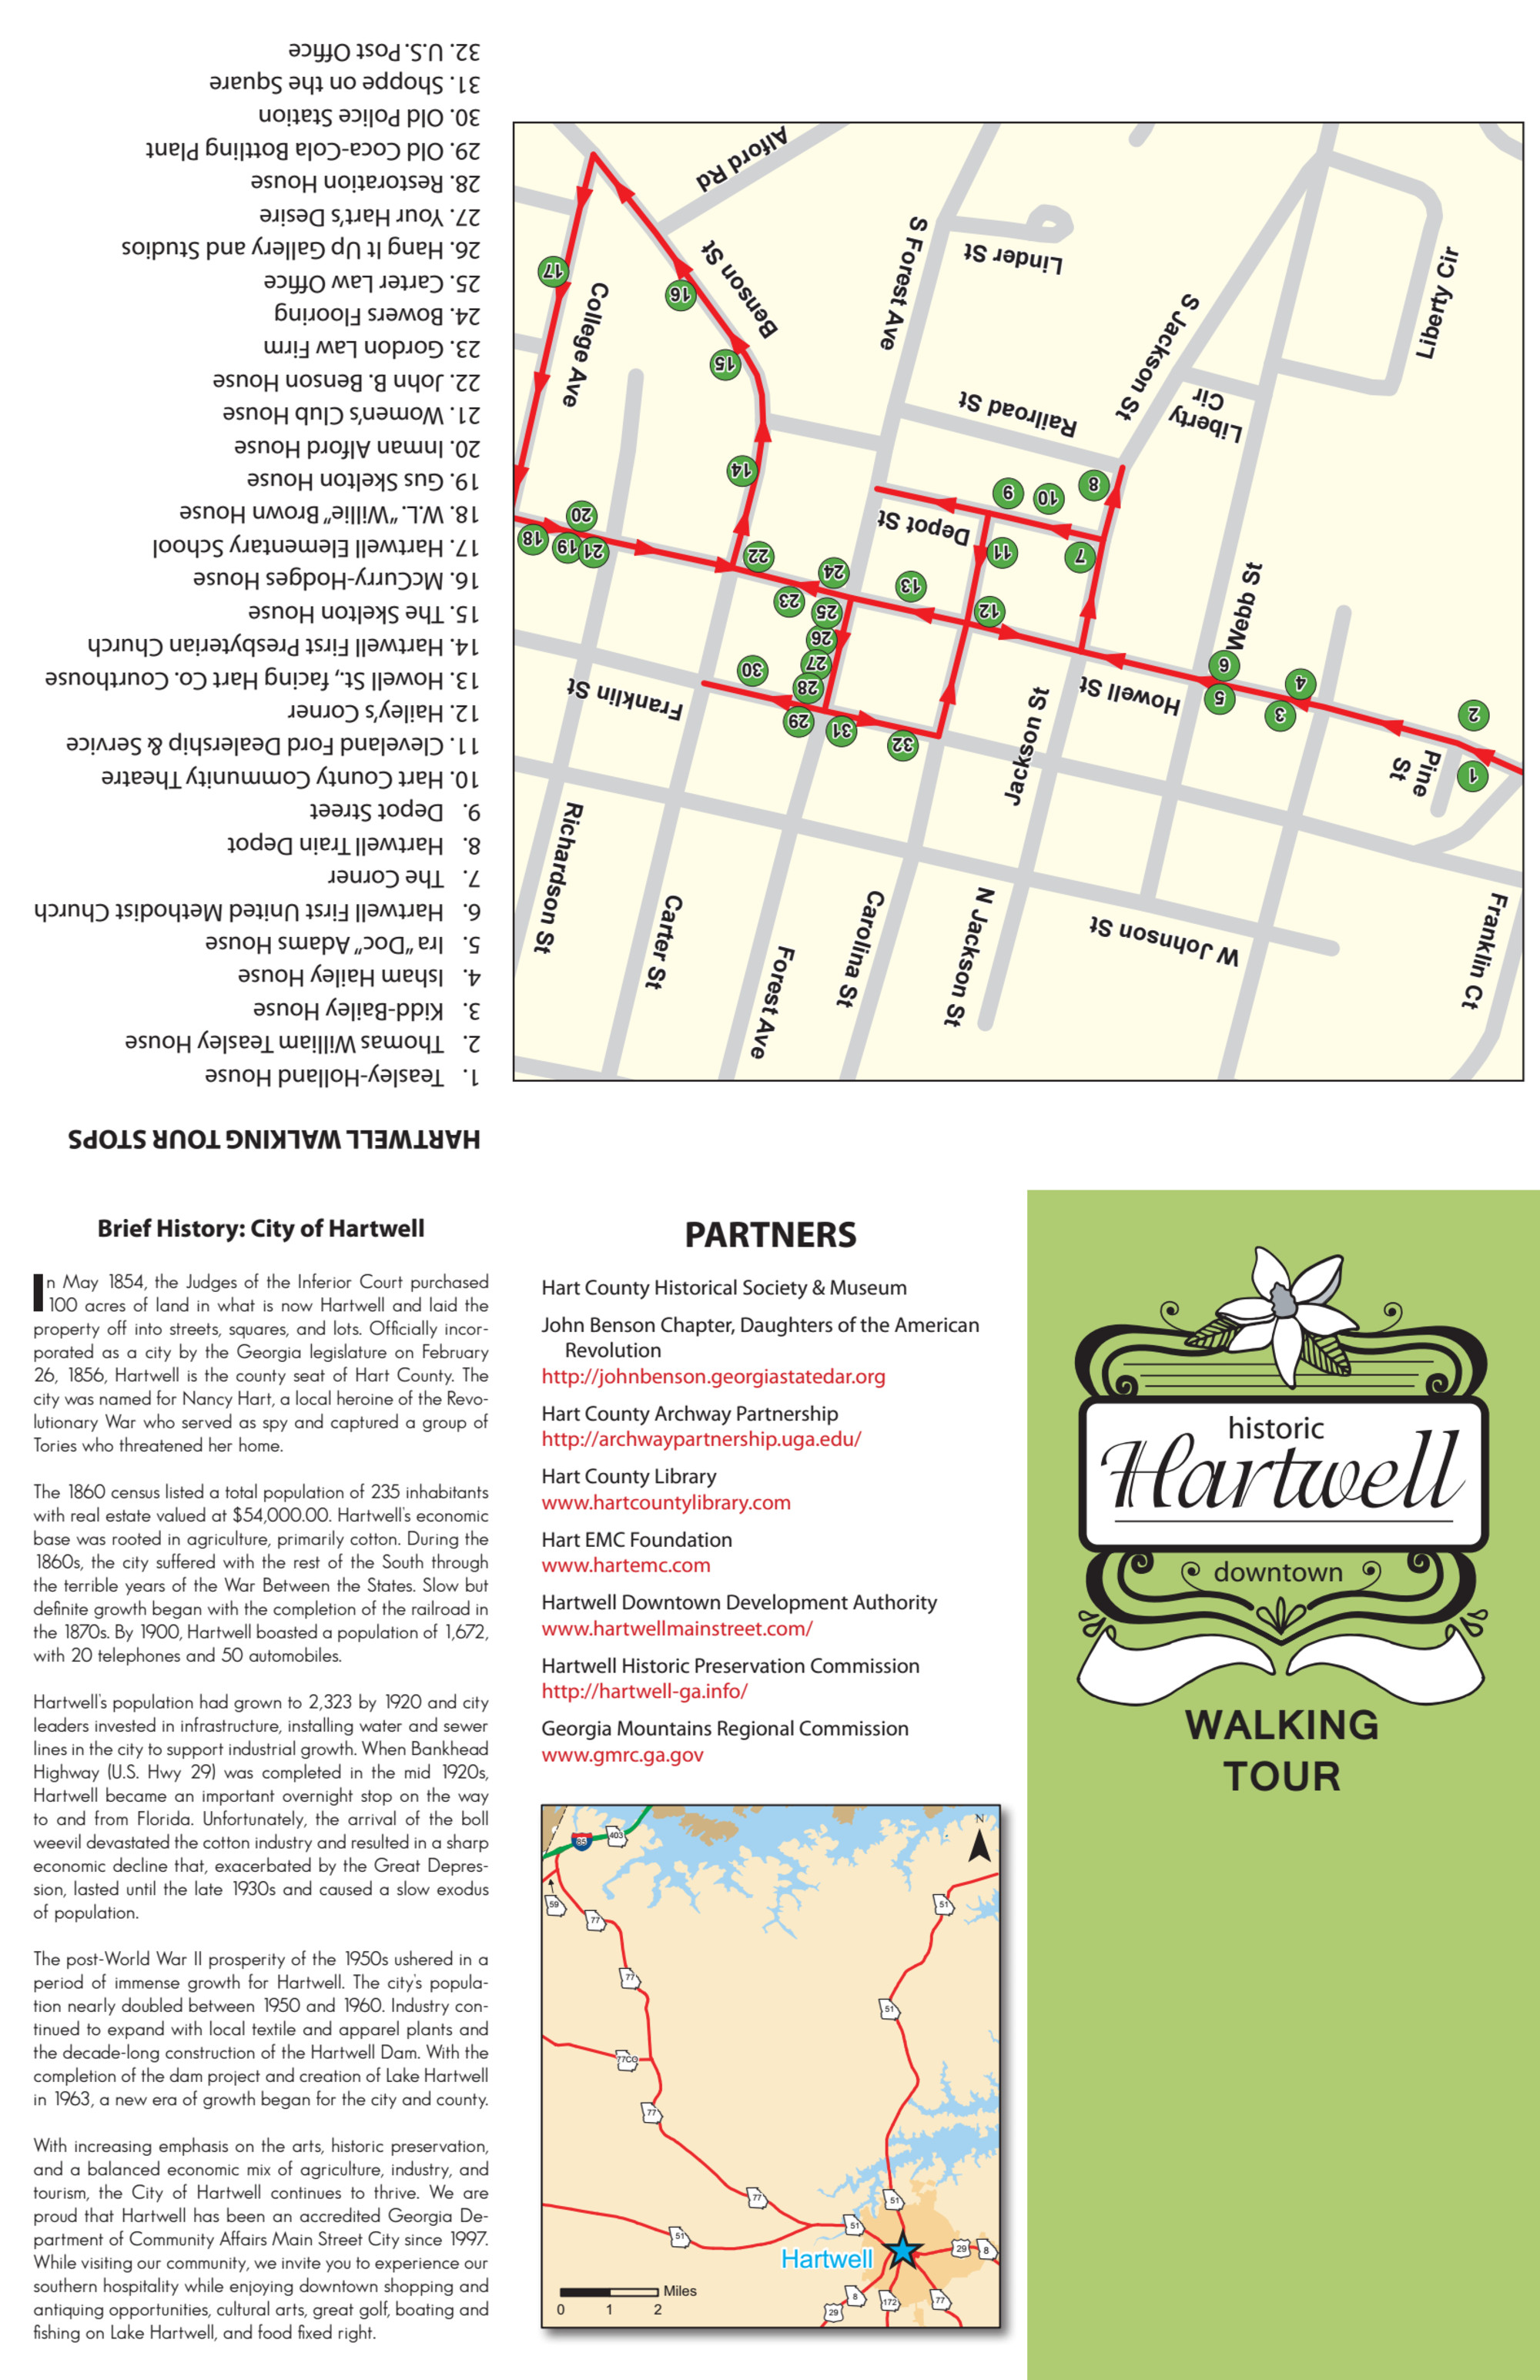 Historic Downtown Hartwell Walking Tour